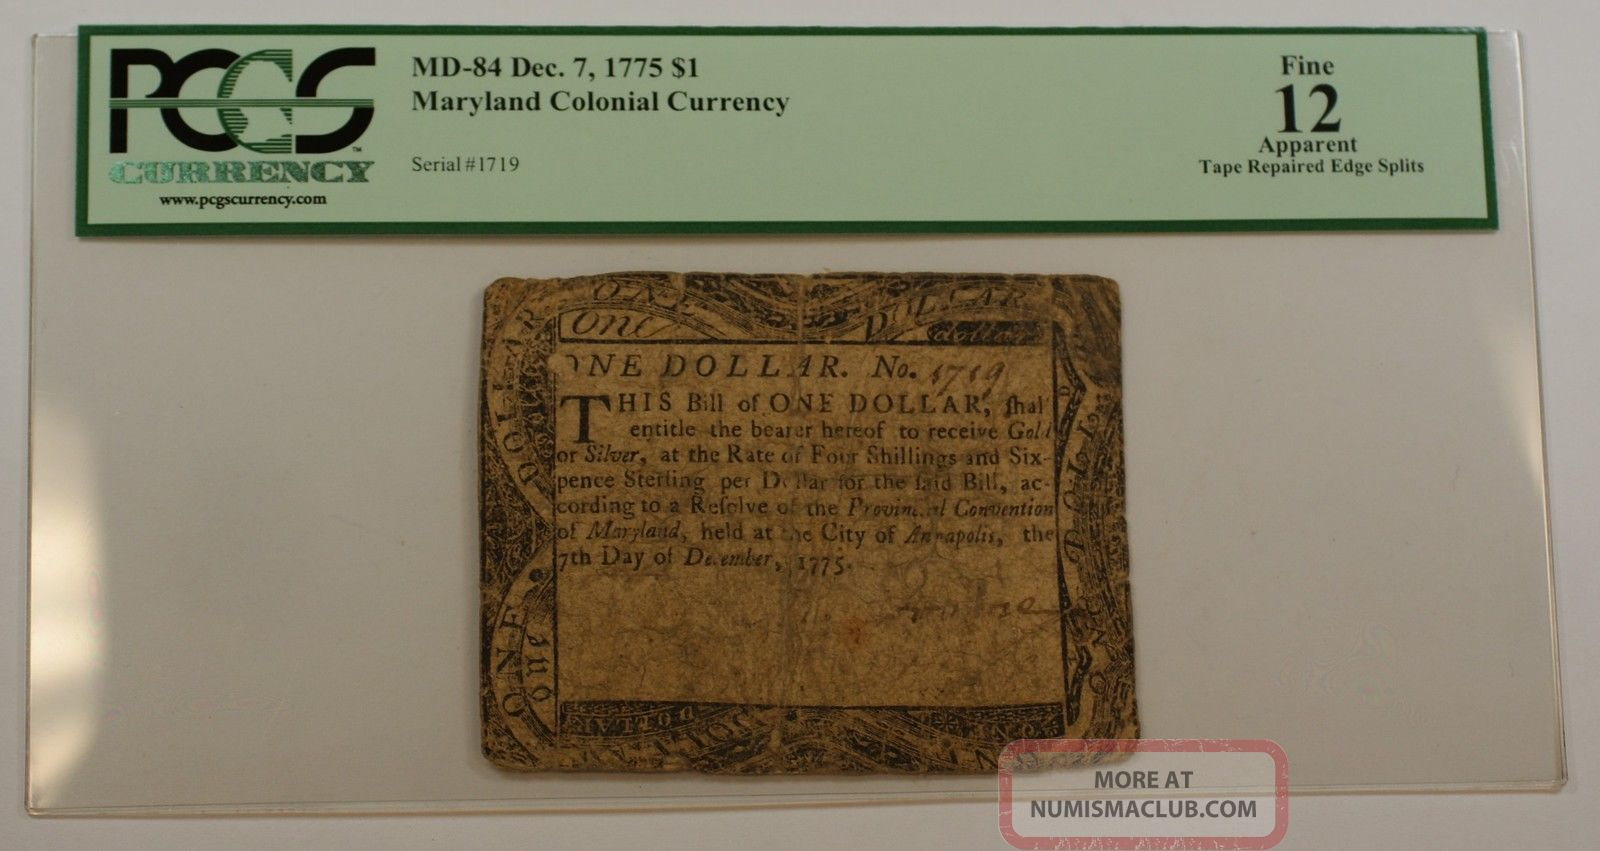 Dec.  7 1775 $1 Maryland Colonial Currency Note Pcgs Fine - 12 Apparent Md - 84 Paper Money: US photo